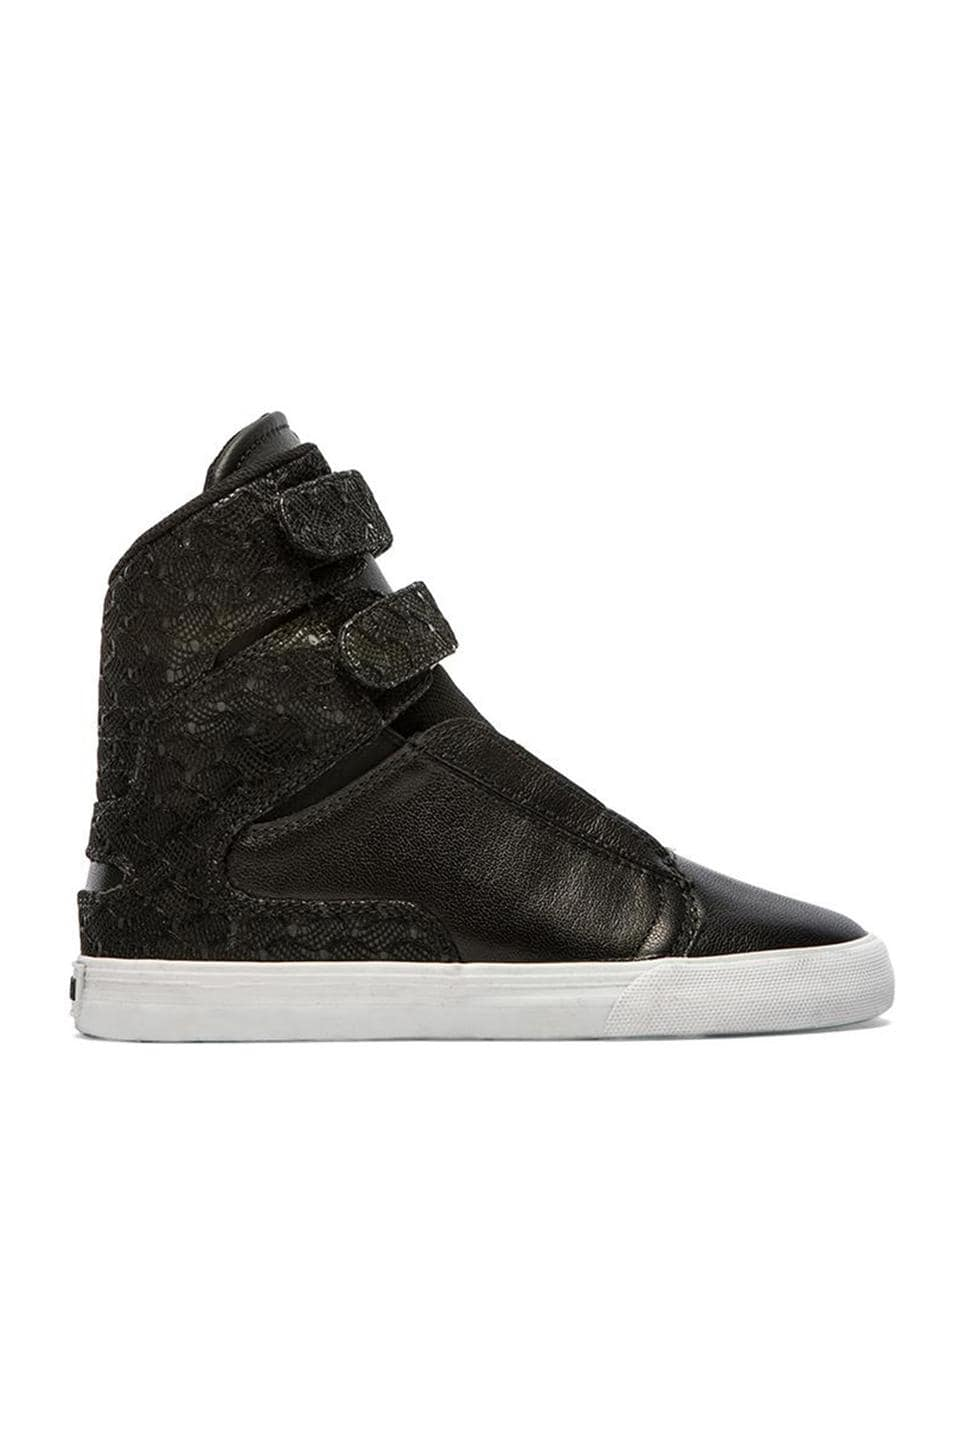 Supra Society II High Top Sneaker in Black Leather